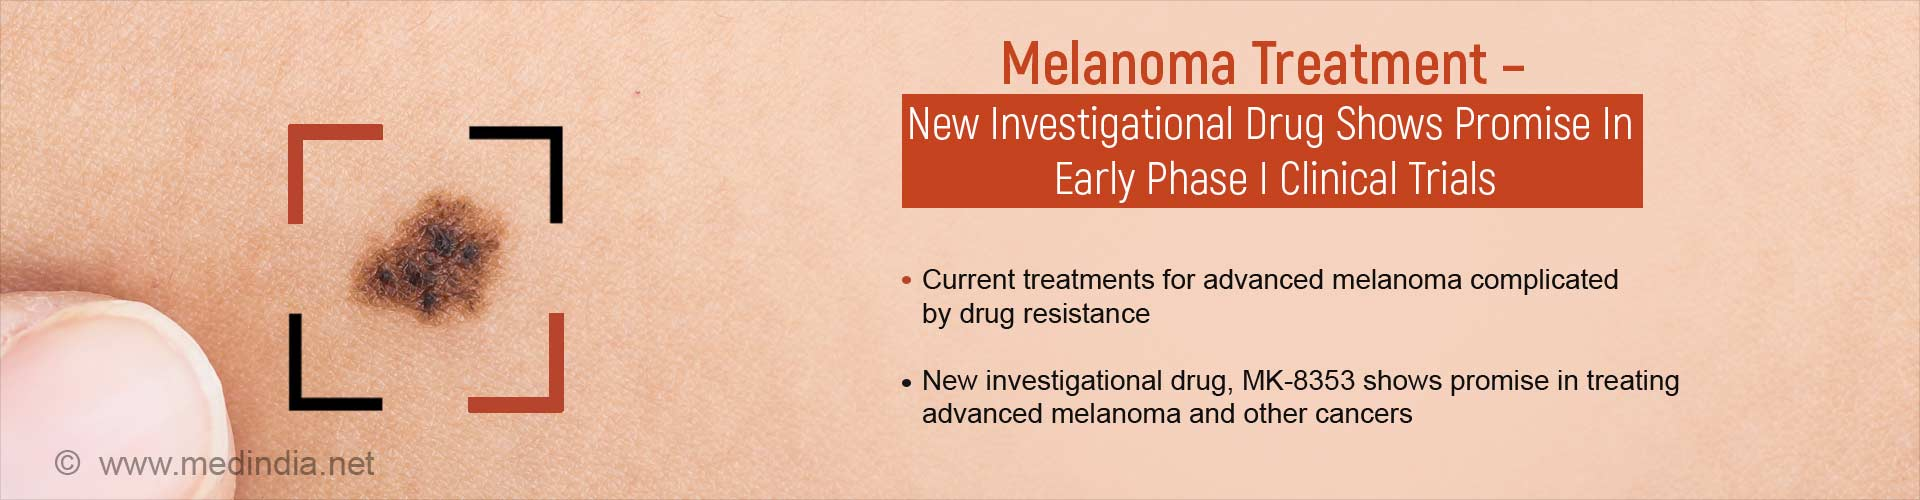 Melanoma Treatment - New Investigational Drug Shows Promise in Early Phase I Clinical Trials